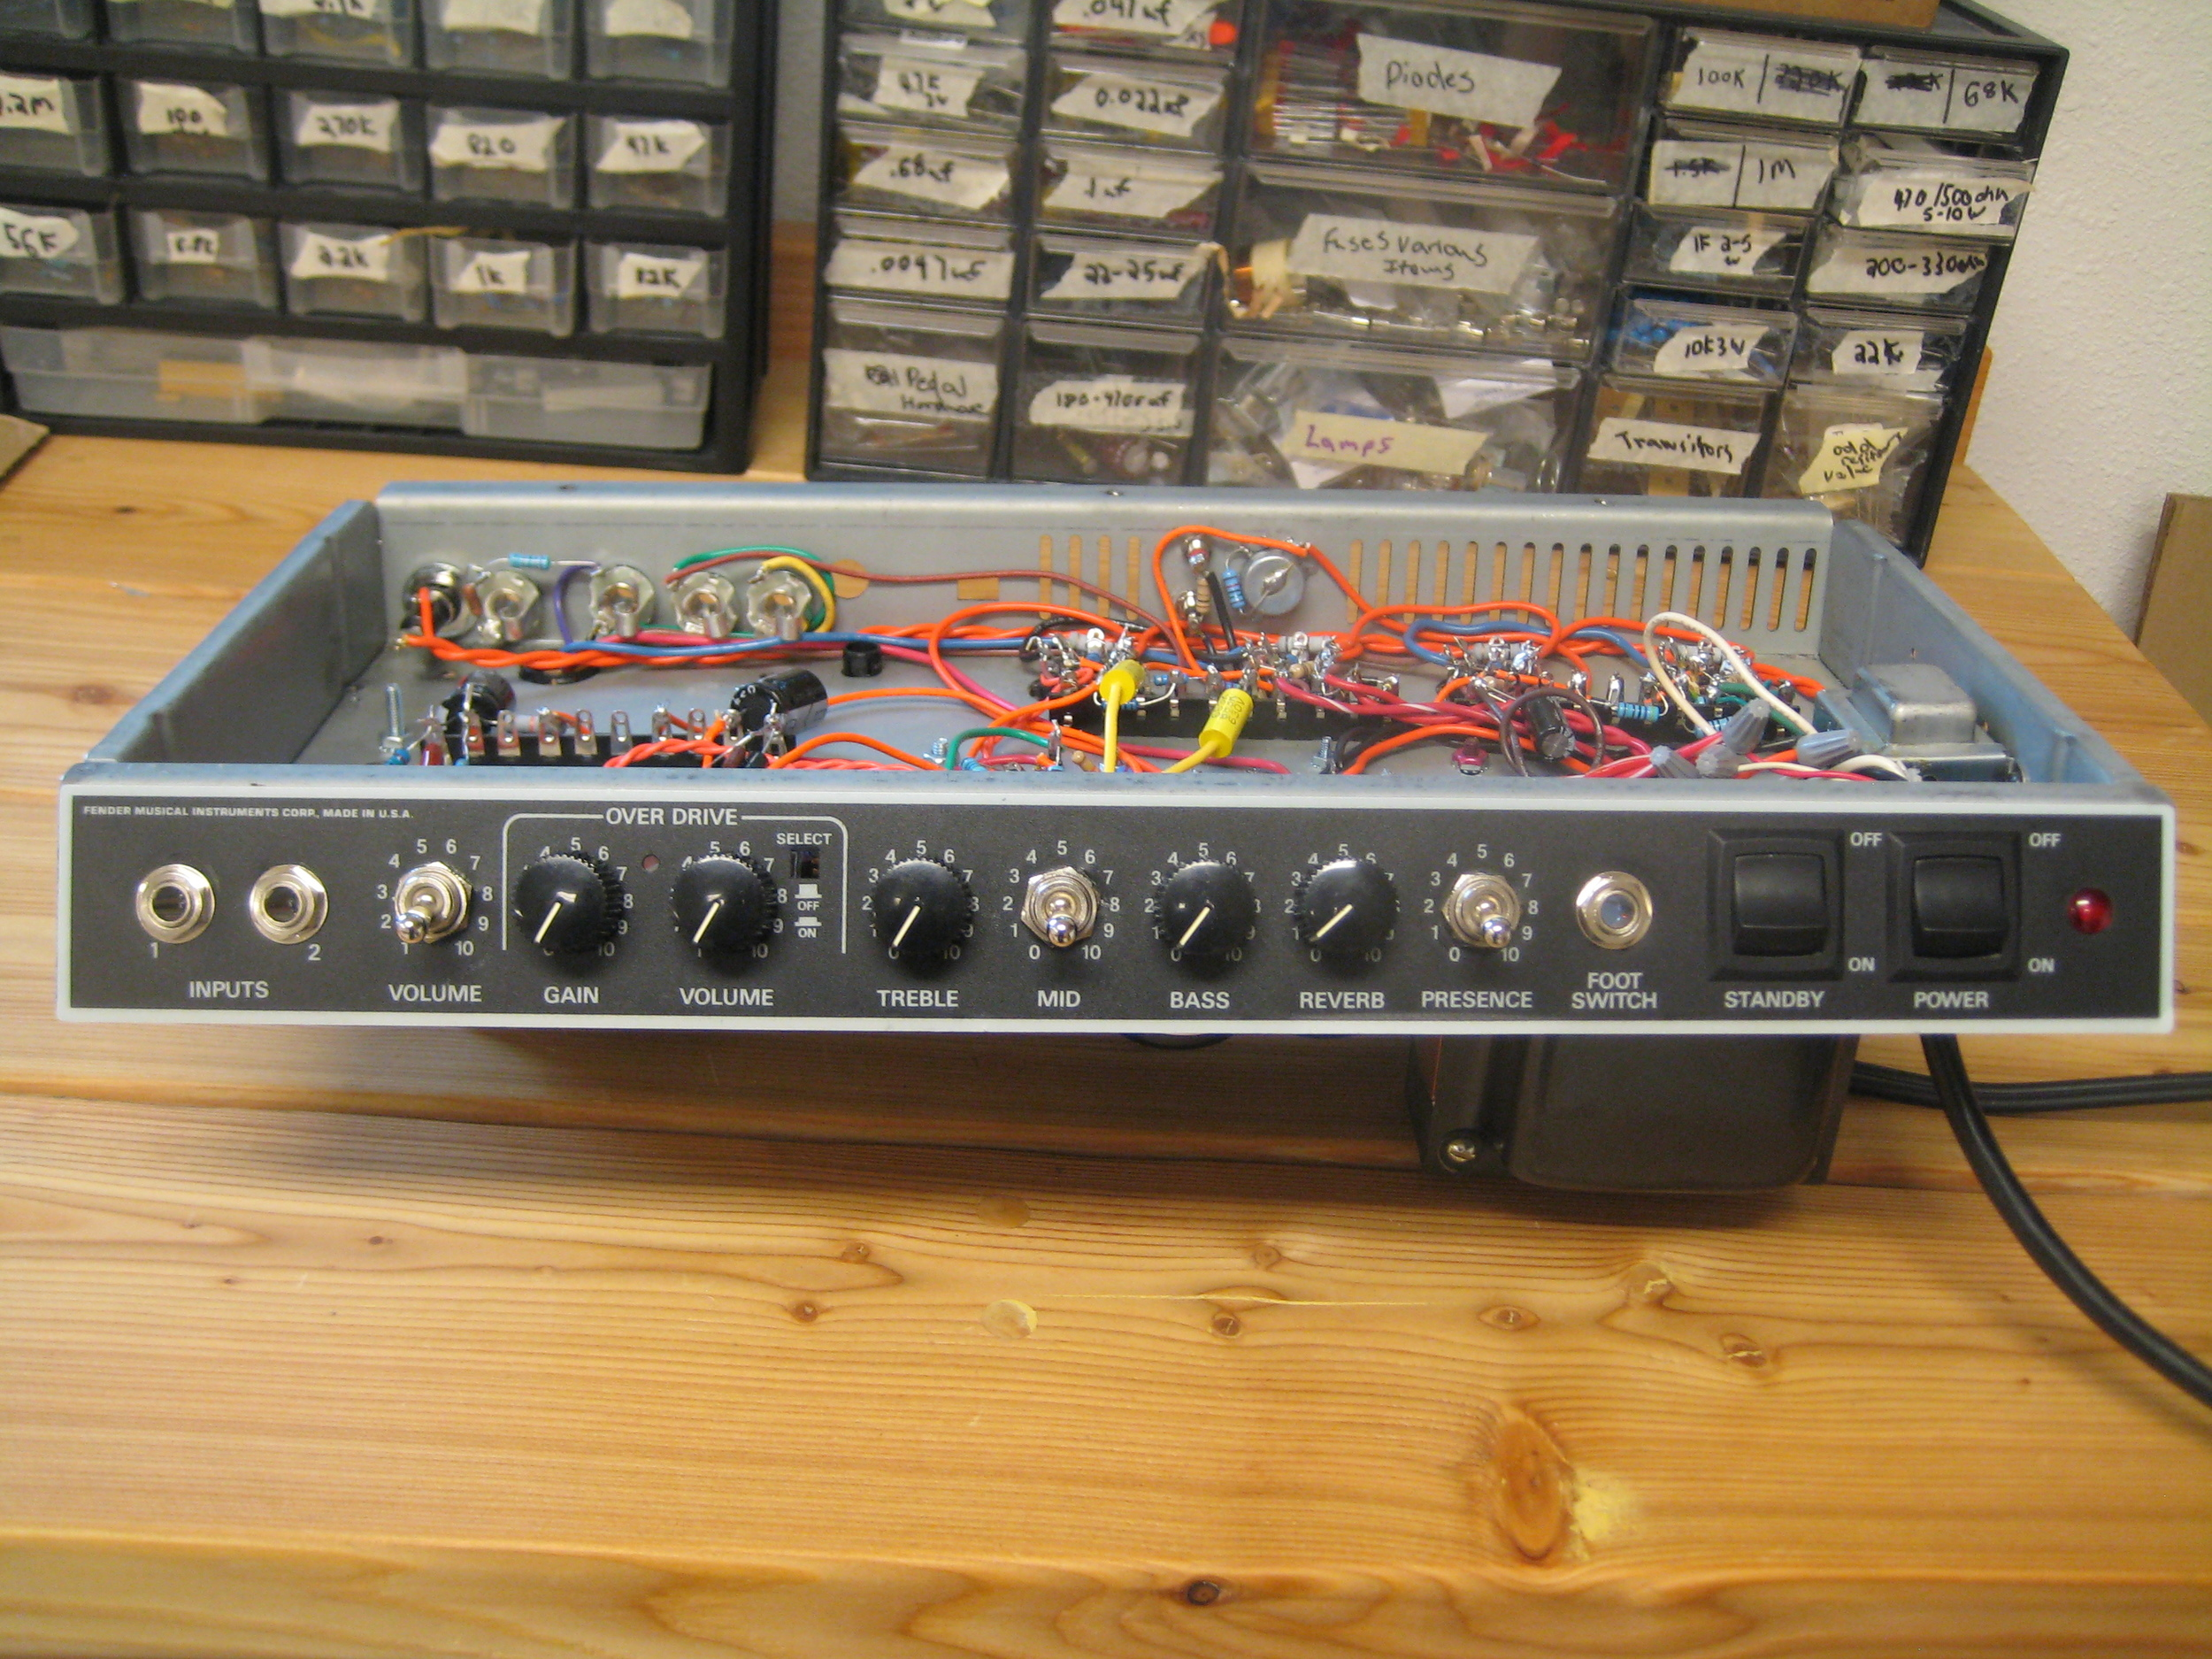 This Fender Super 60 (horrible sounding) was converted into a Jim Kelly Style amp. The Owner loves it!